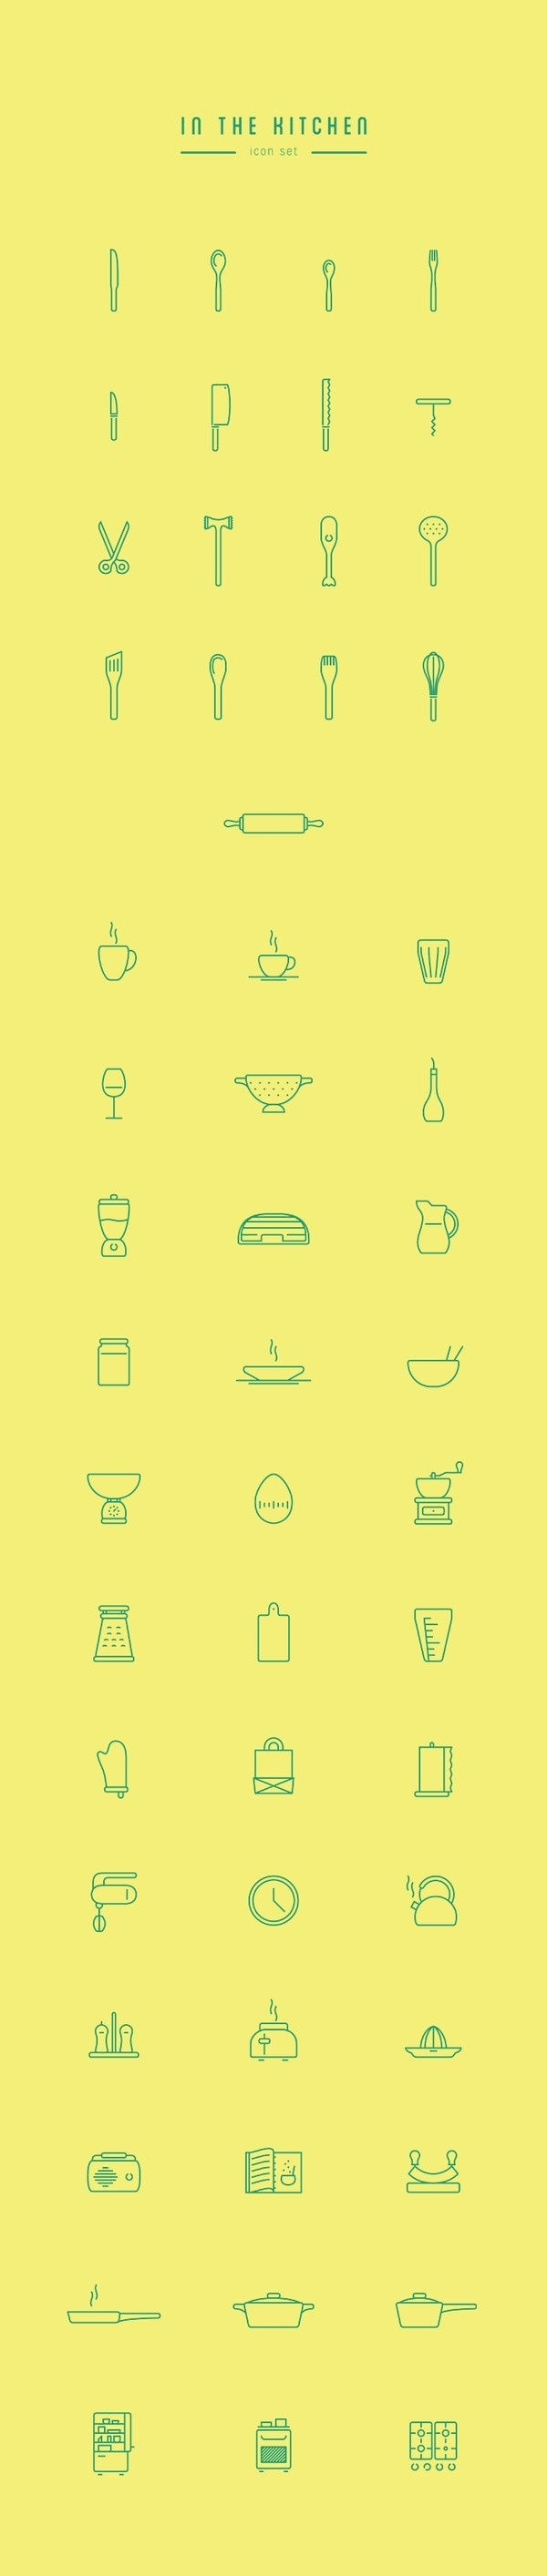 Free High Quality Kitchen Line Icon Set by Wojciech Zasina #icon #freebies #design #graphic #free #kitchen